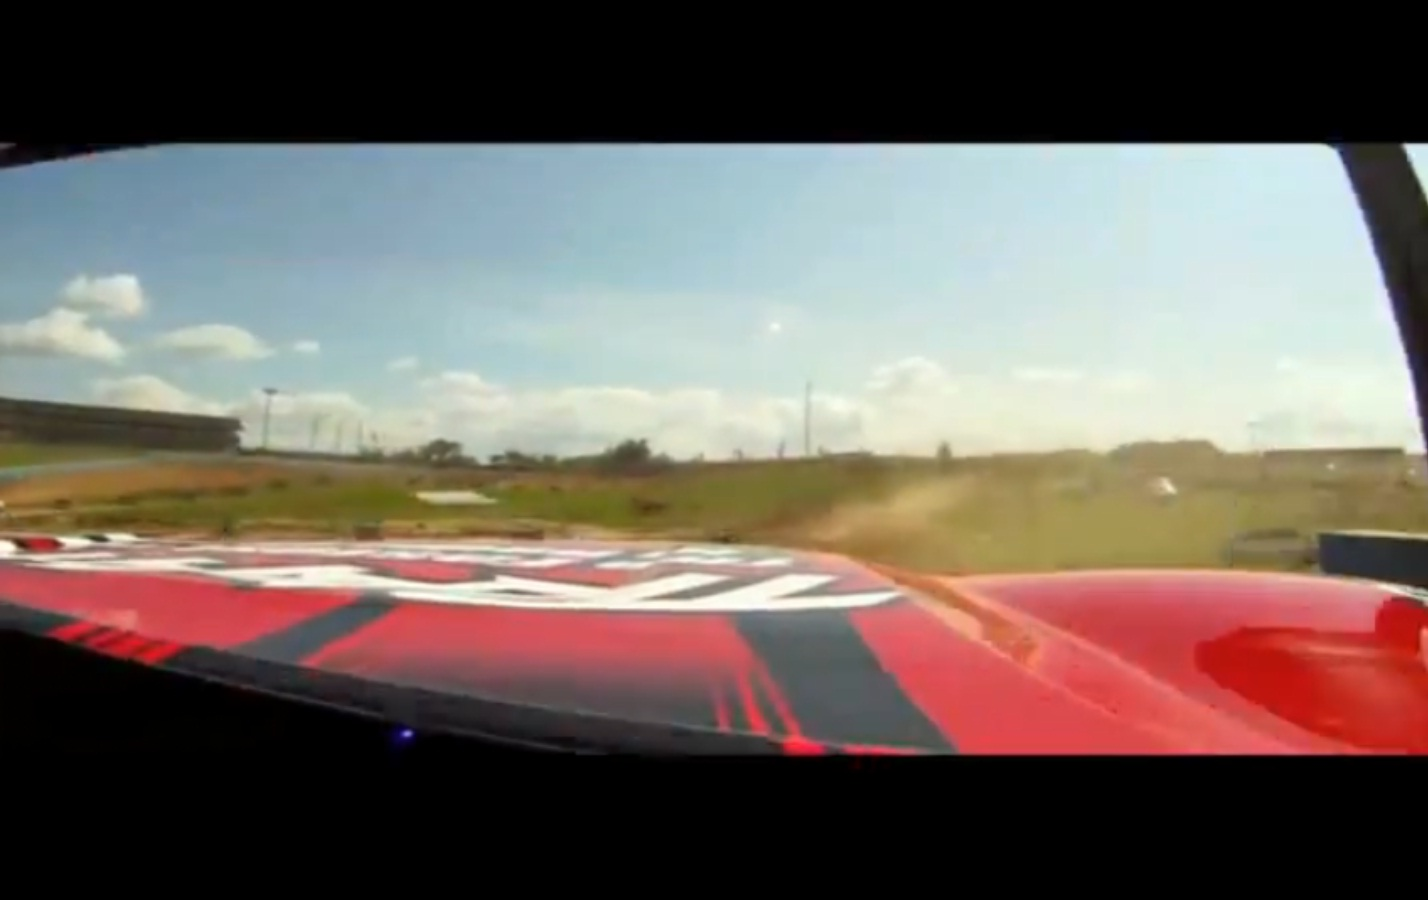 Traxxas Short Course Cool Full-size In-car Camera Video